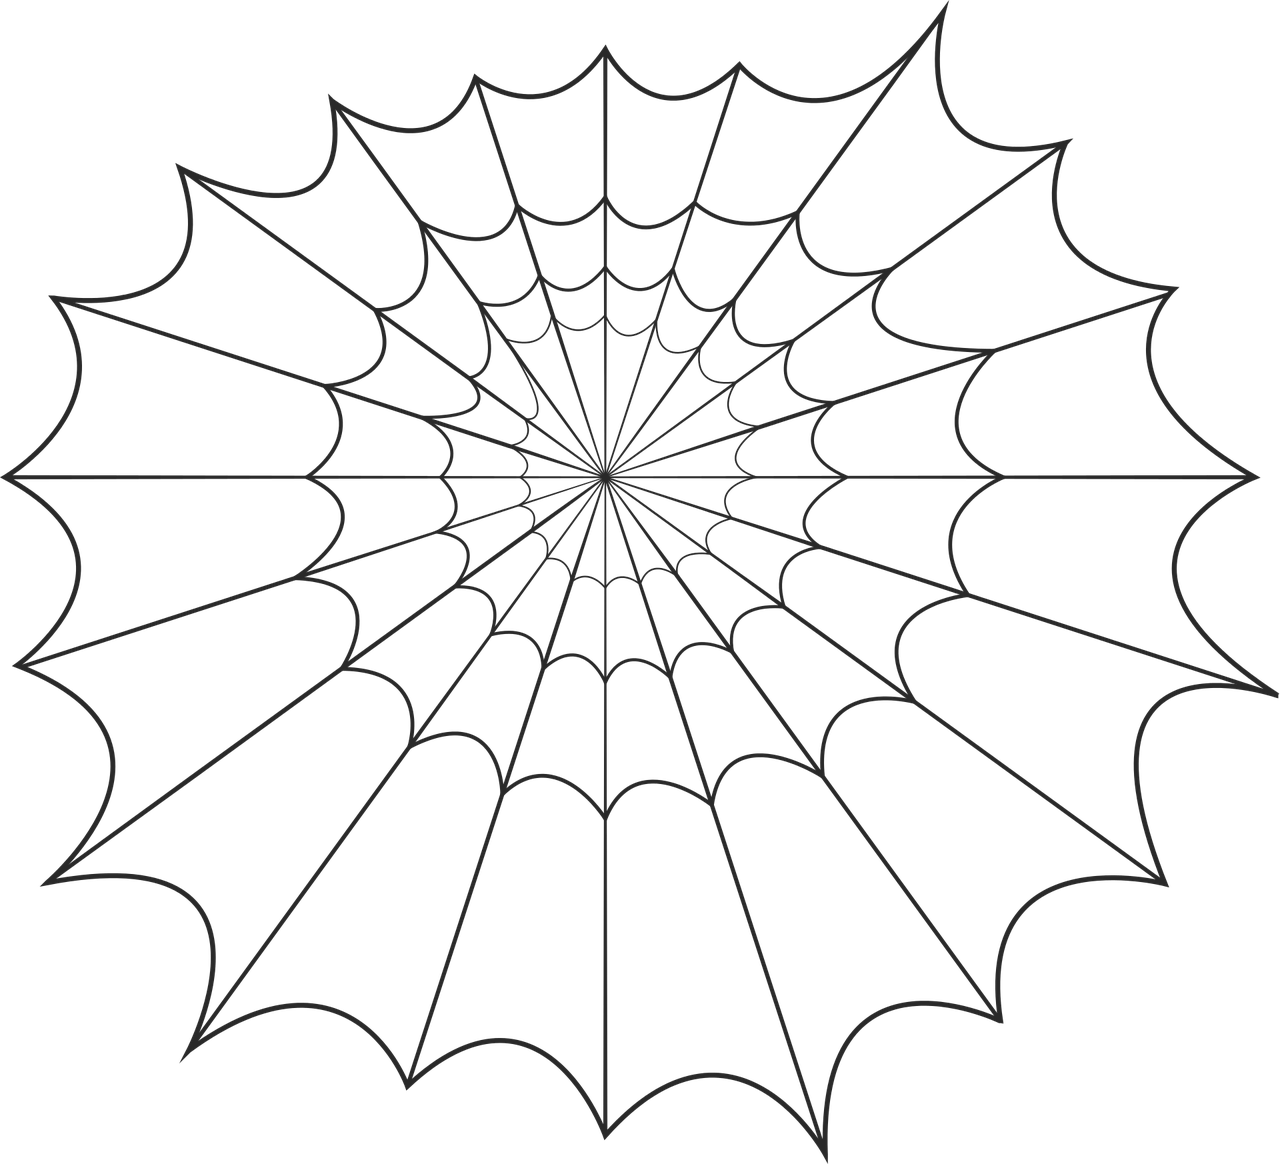 Download Vacation, Spider, Web, Halloween, Spooky, Horror - Toile ...